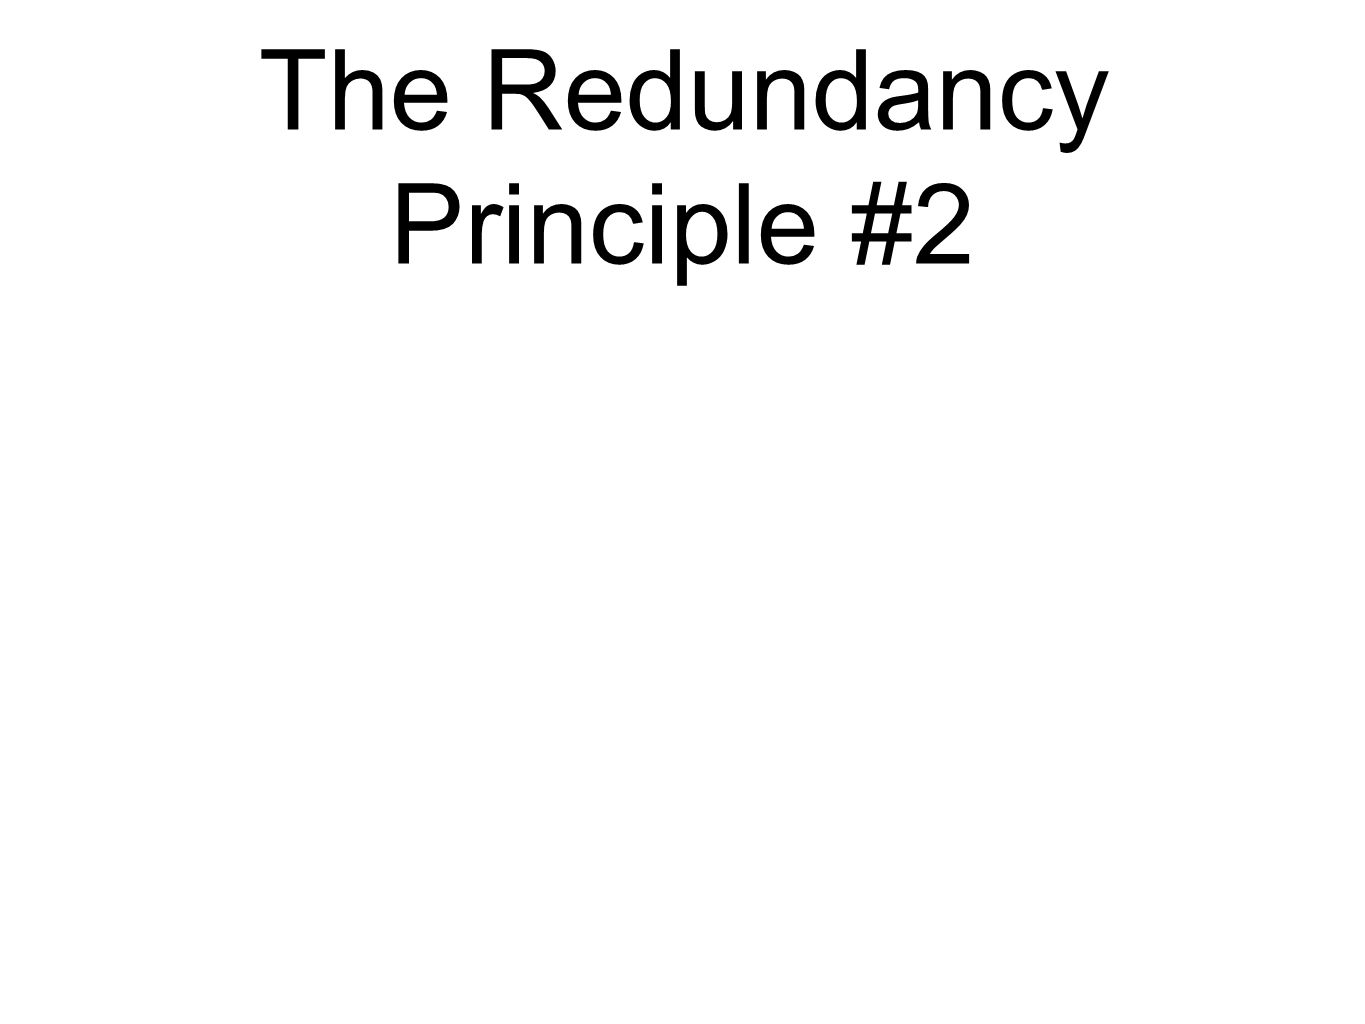 The Redundancy Principle #2